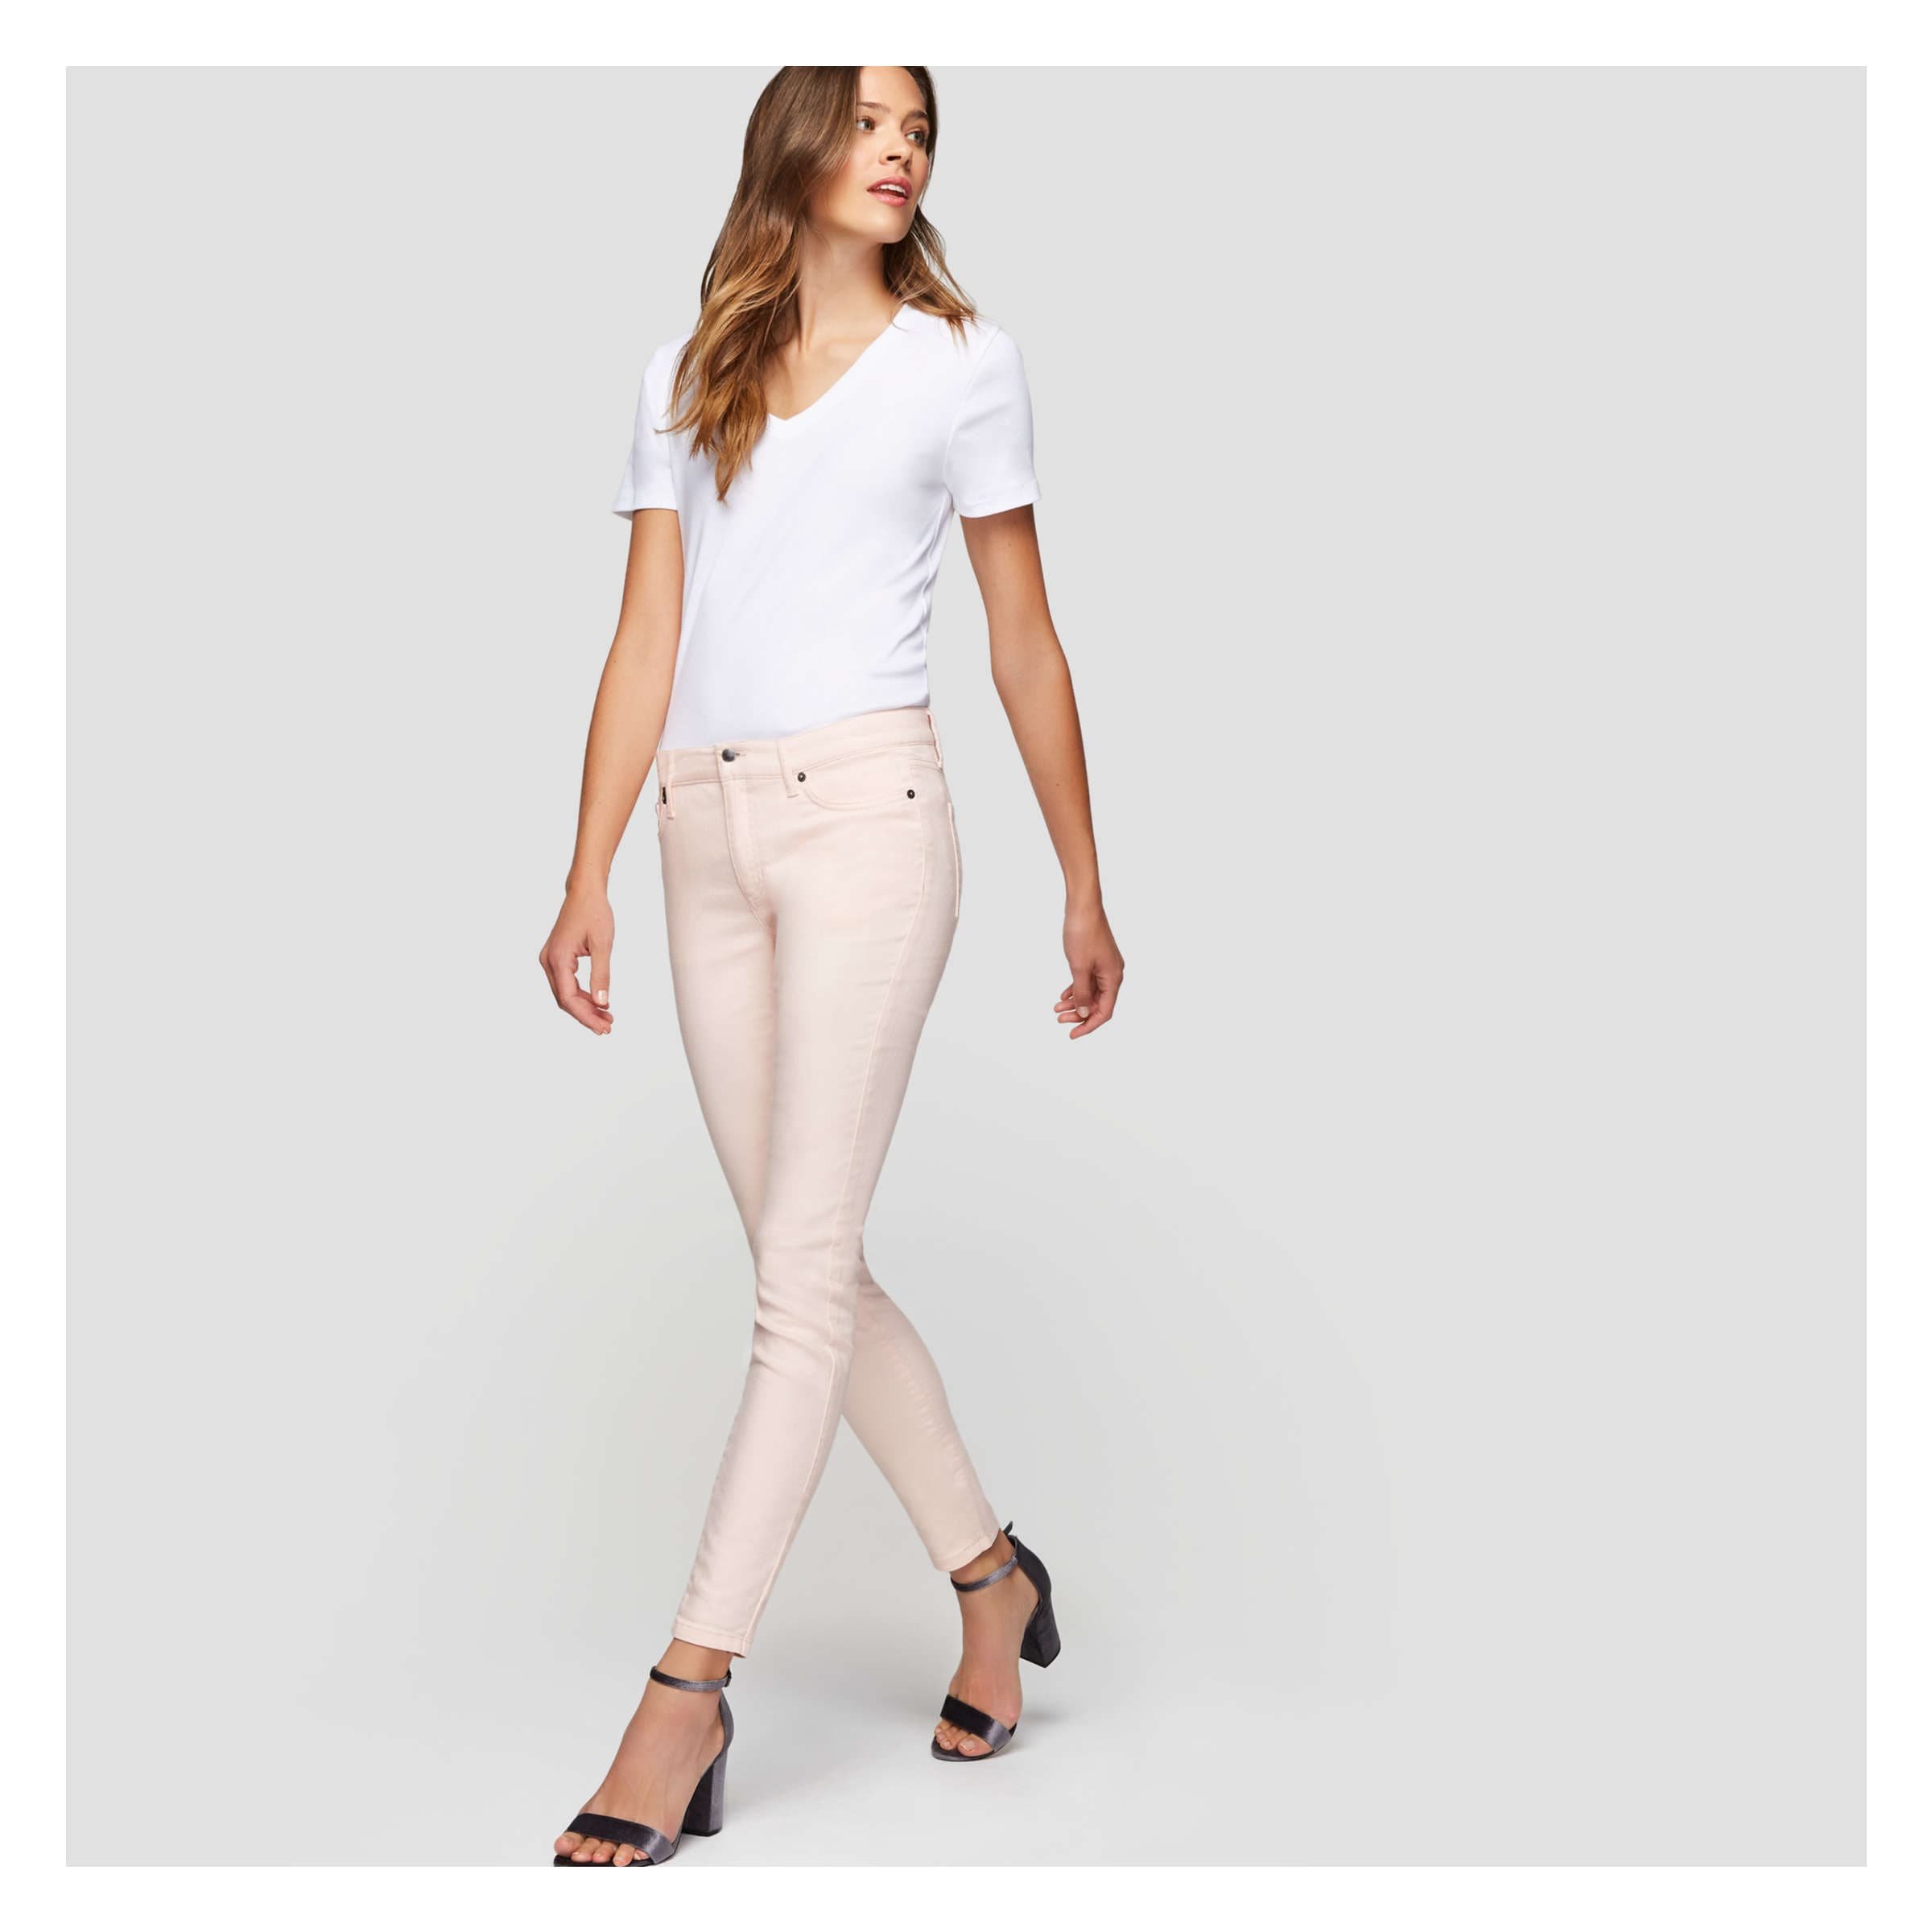 newest df28b ccefc Twill Pant in Pastel Pink from Joe Fresh